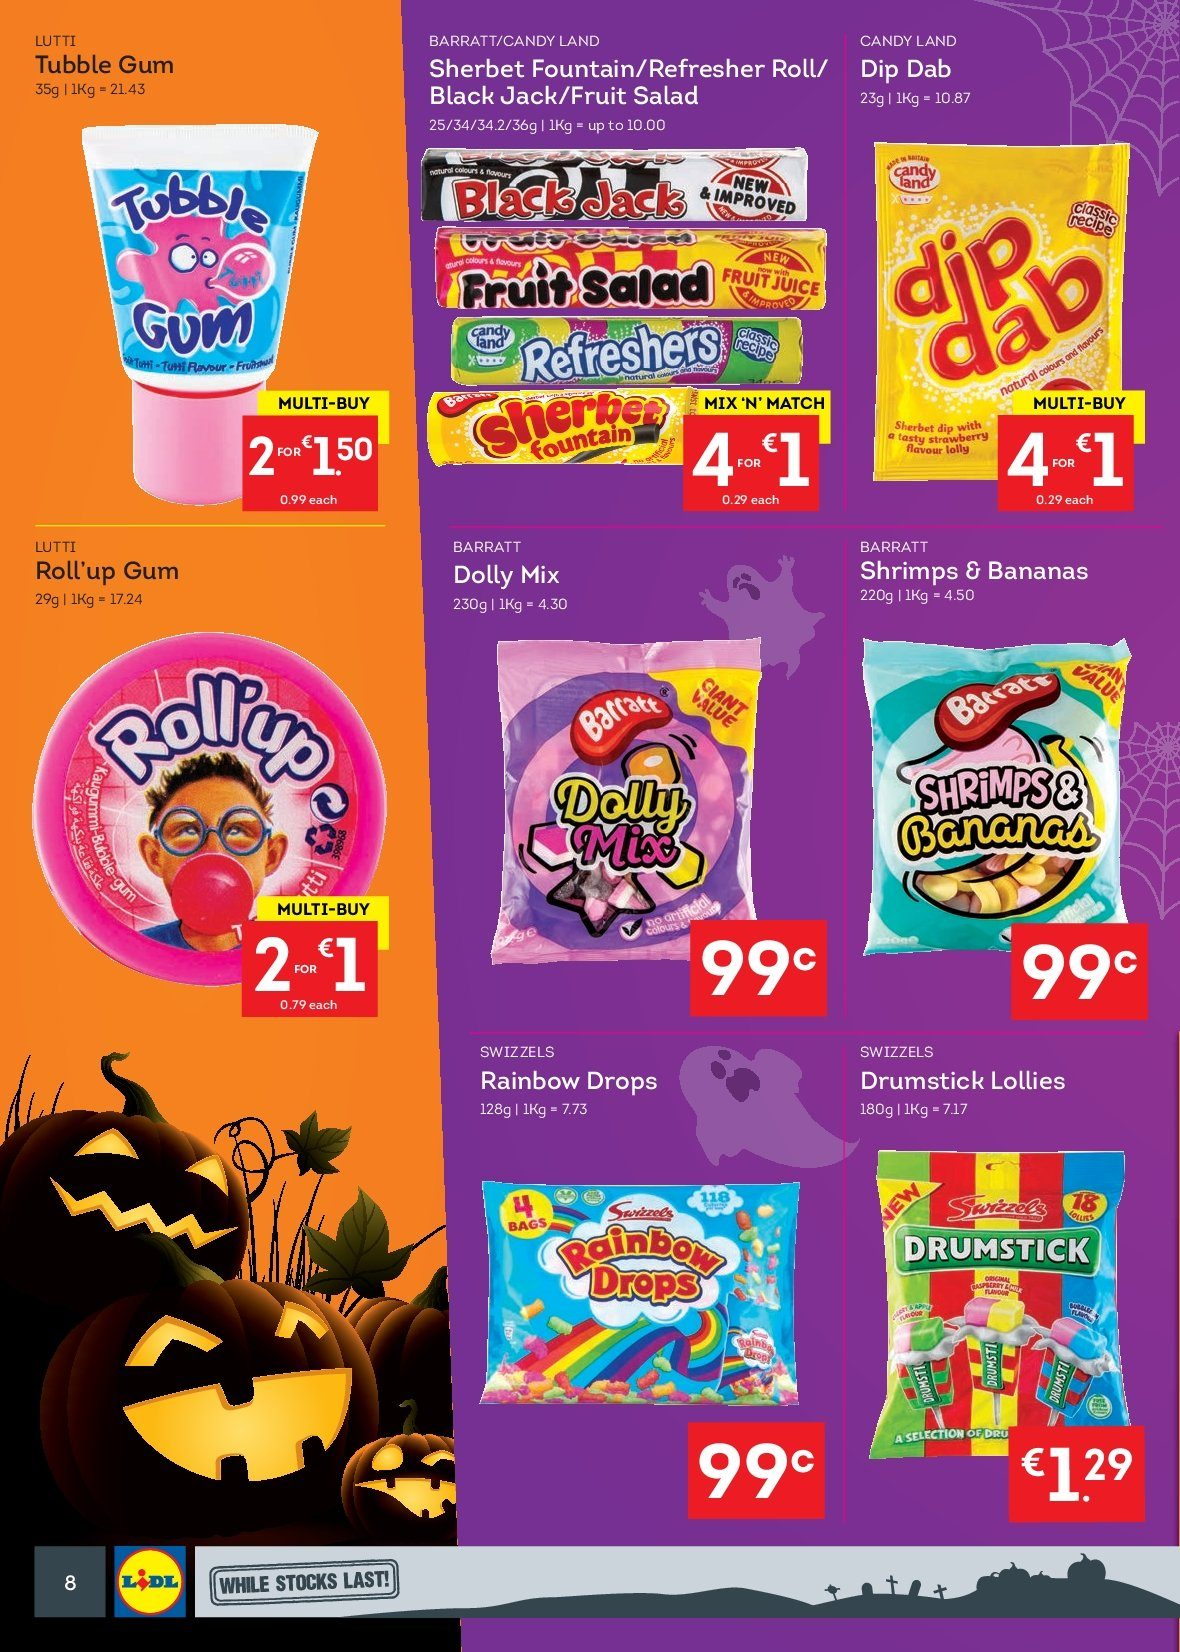 Lidl offer  - 15.10.2018 - 21.10.2018 - Sales products - salad, bananas, shrimps, dip, sherbet, candy, lollipop, Swizzels, fruit salad, juice, fruit juice, refresher, bag. Page 8.